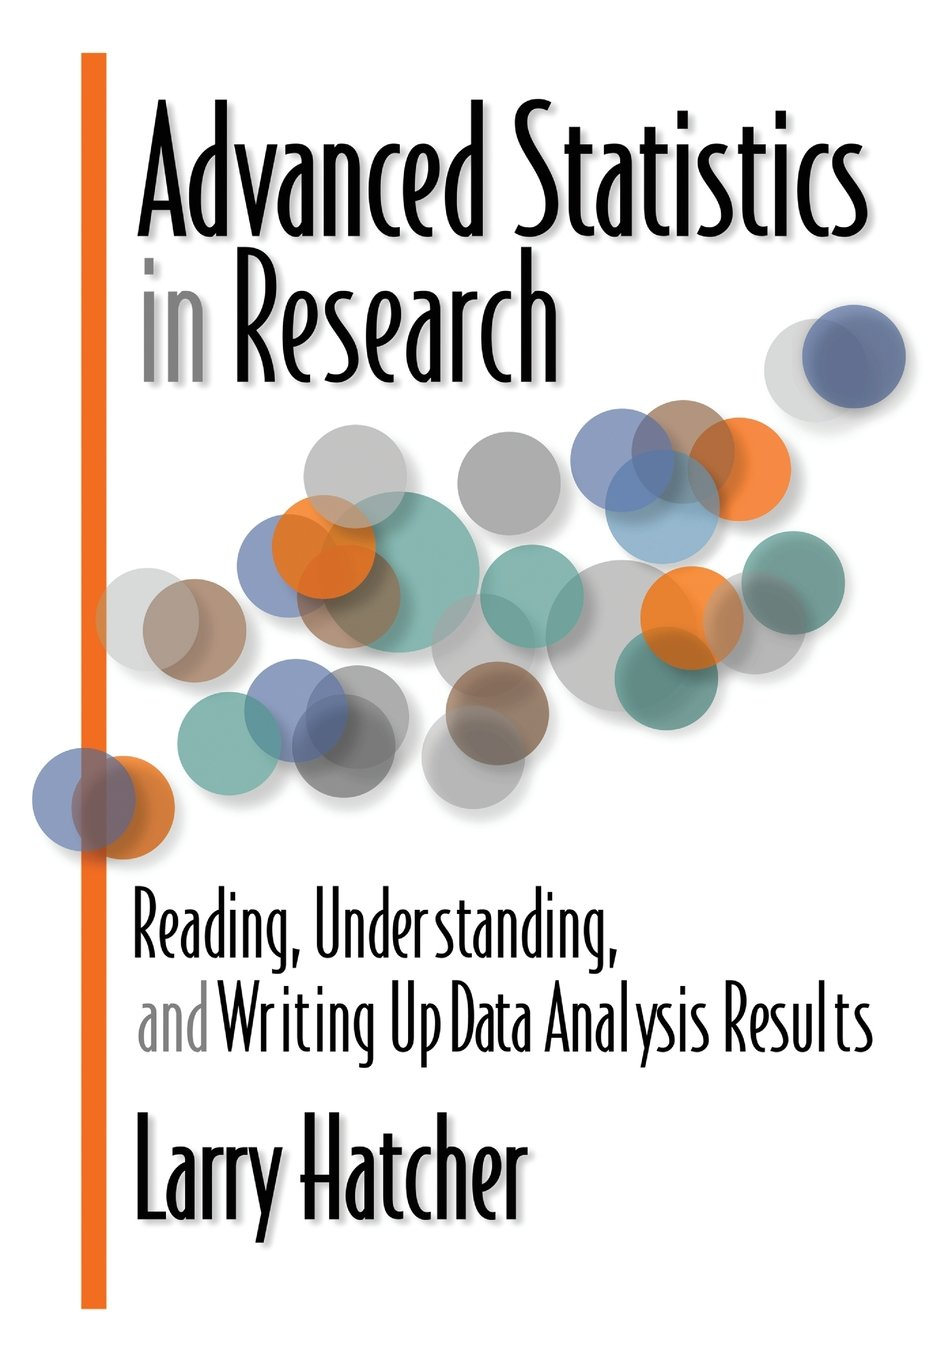 Advanced Statistics in Research: Reading, Understanding, and Writing Up  Data Analysis Results: Larry Hatcher: 9780985867003: Amazon.com: Books